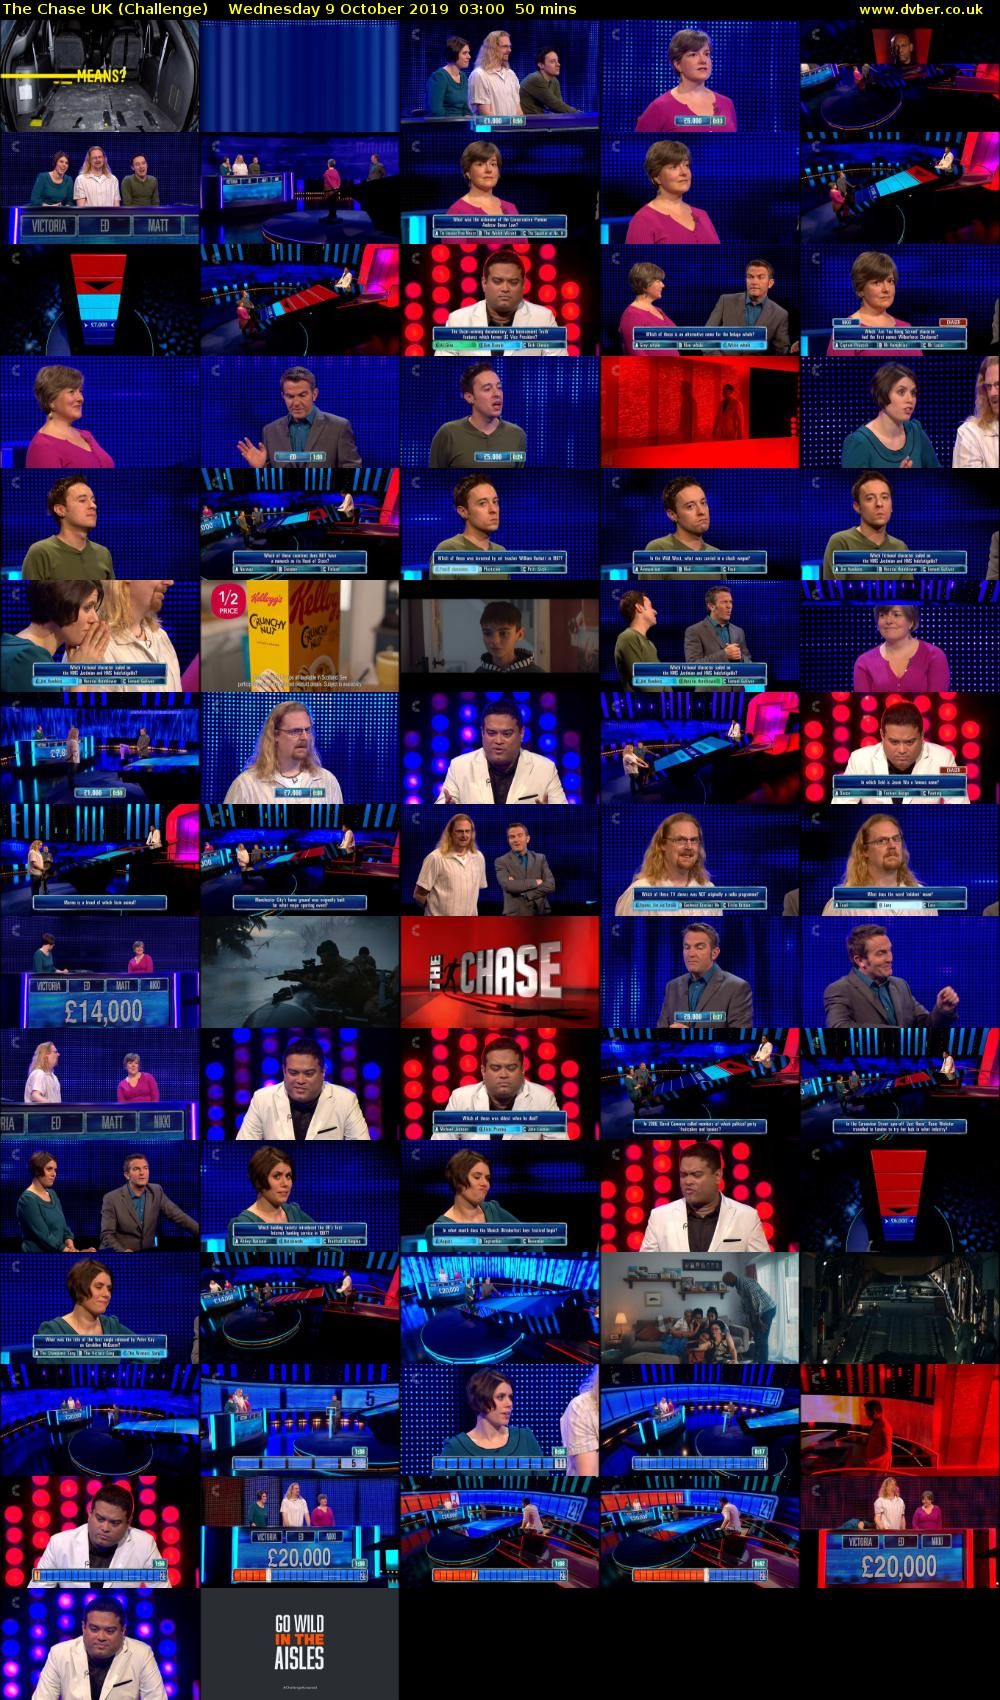 The Chase UK (Challenge) Wednesday 9 October 2019 03:00 - 03:50